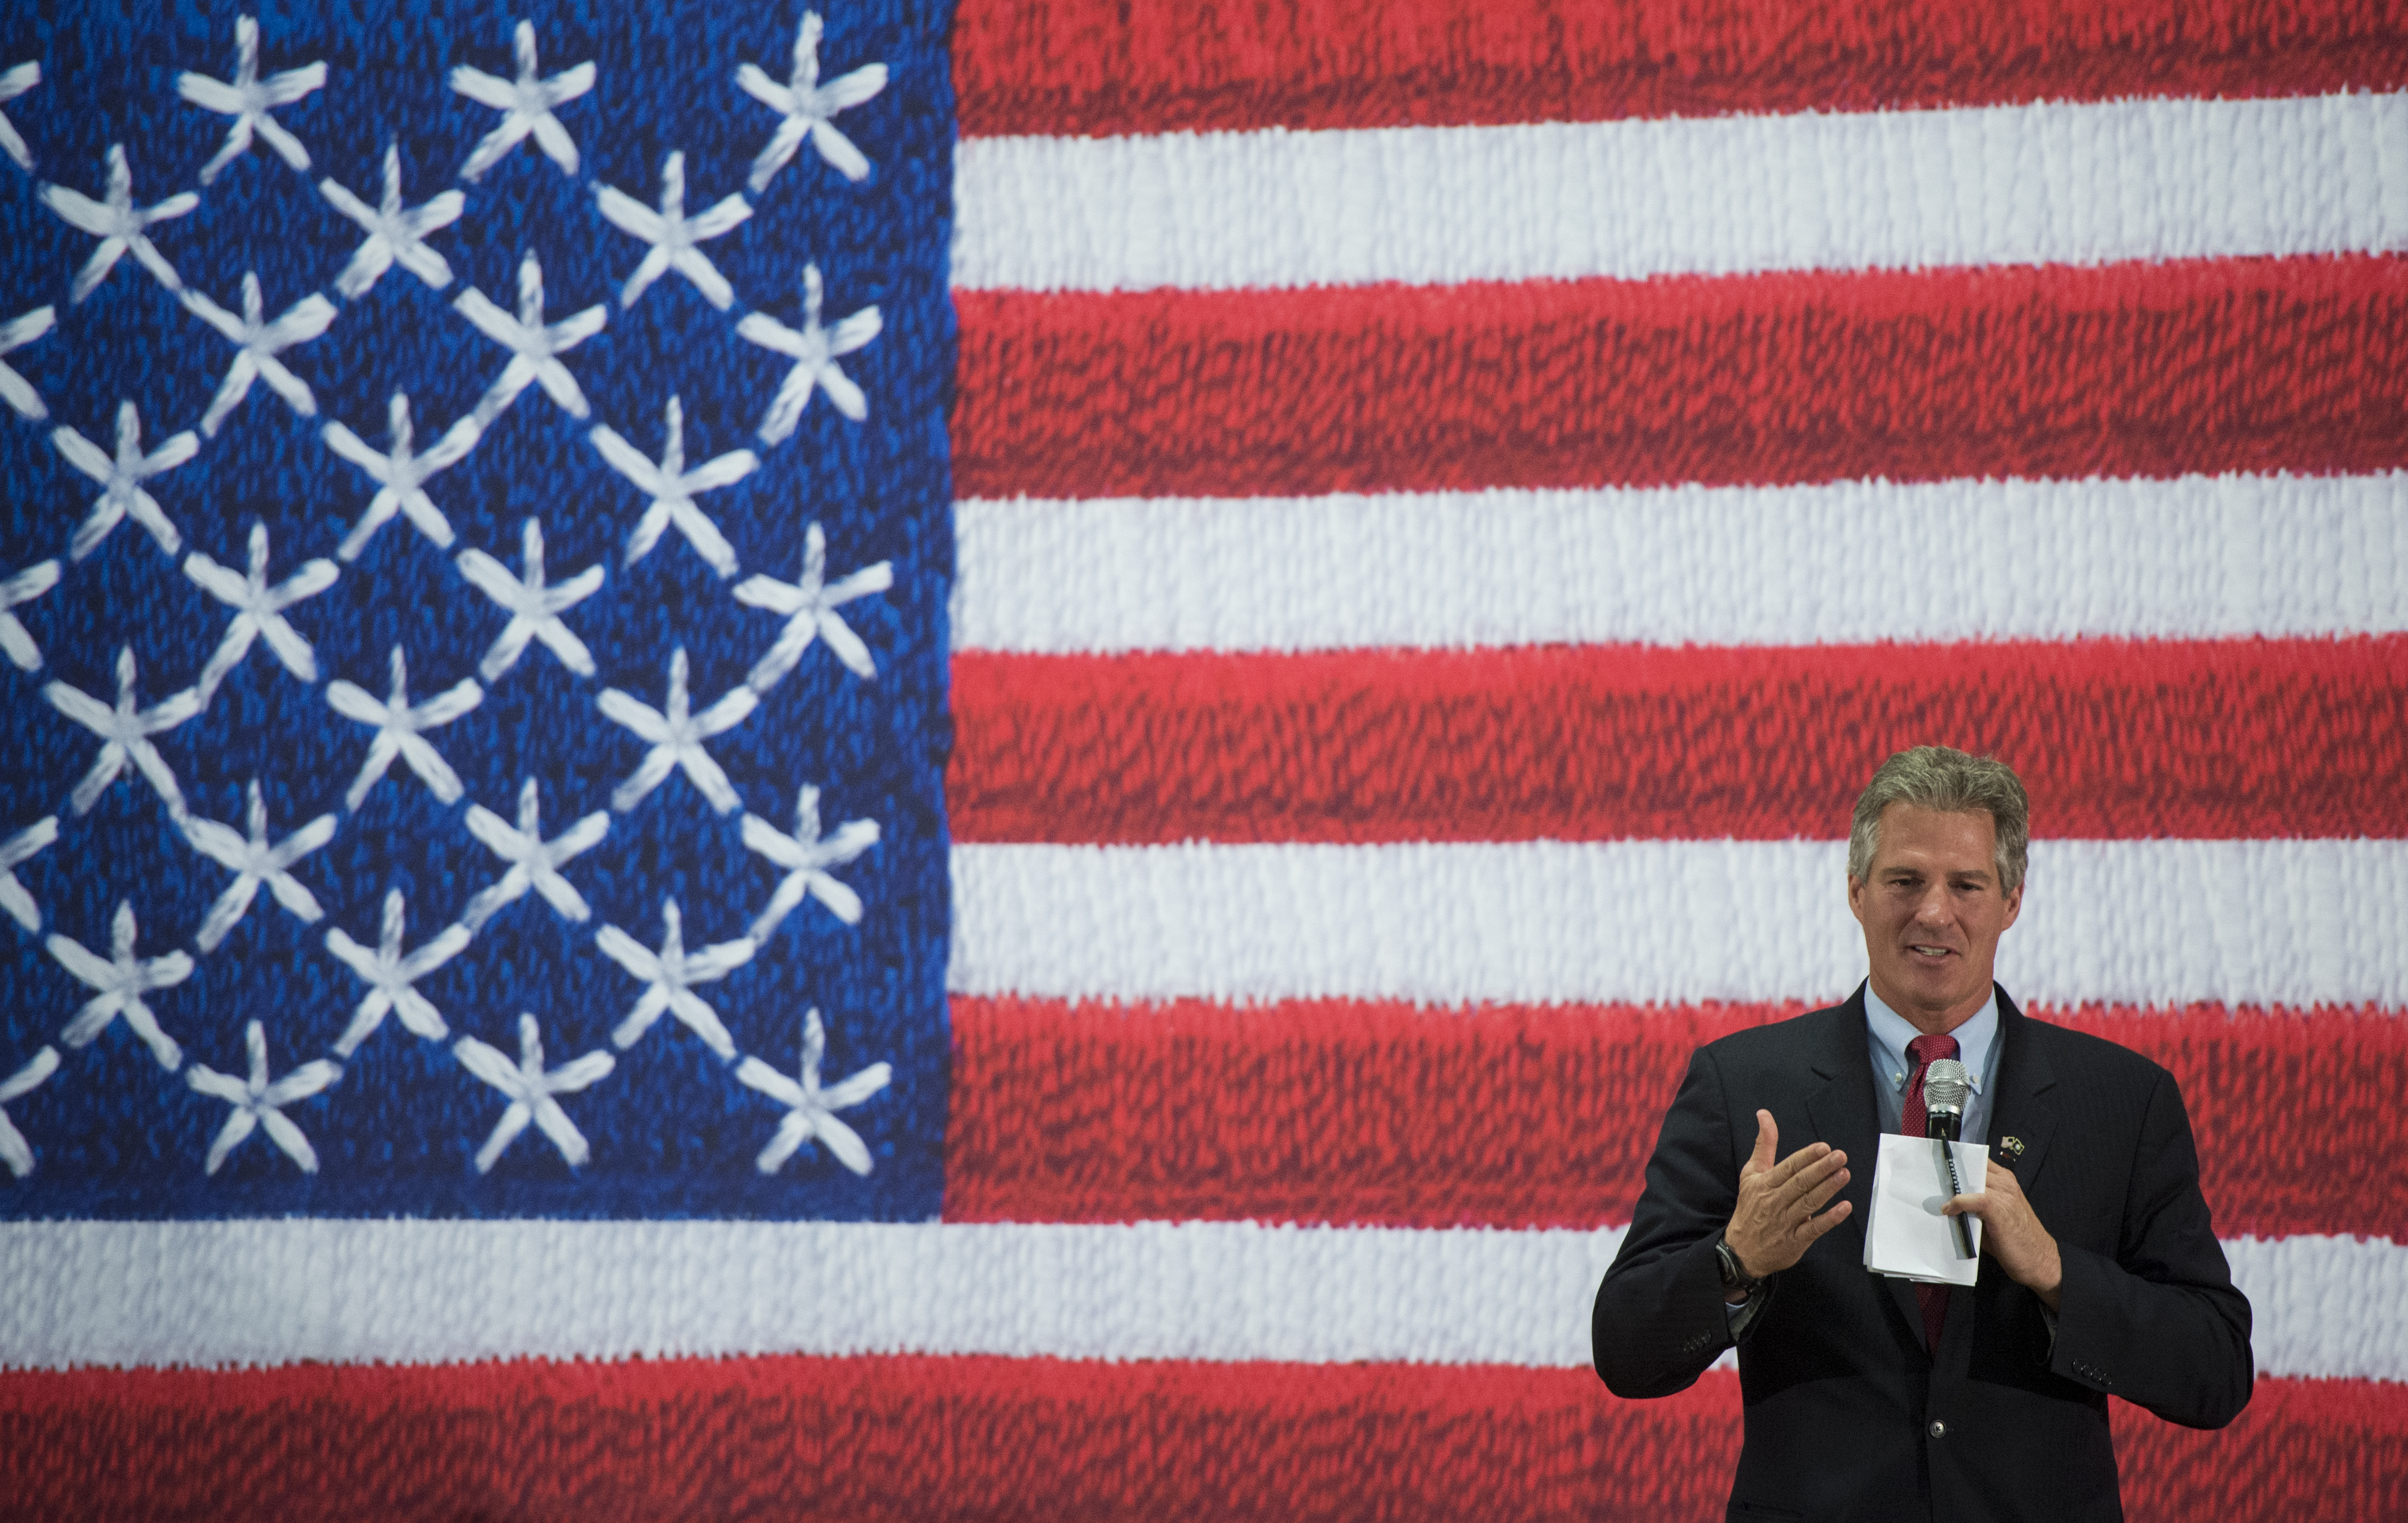 Former Sen. Scott Brown, R-Mass., left, candidate for U.S. Senate in New Hampshire, holds a campaign town hall rally with Sen. John McCain, R-Ariz., not pictured, at the Pinkerton Academy in Derry, N.H., on Aug. 18, 2014.